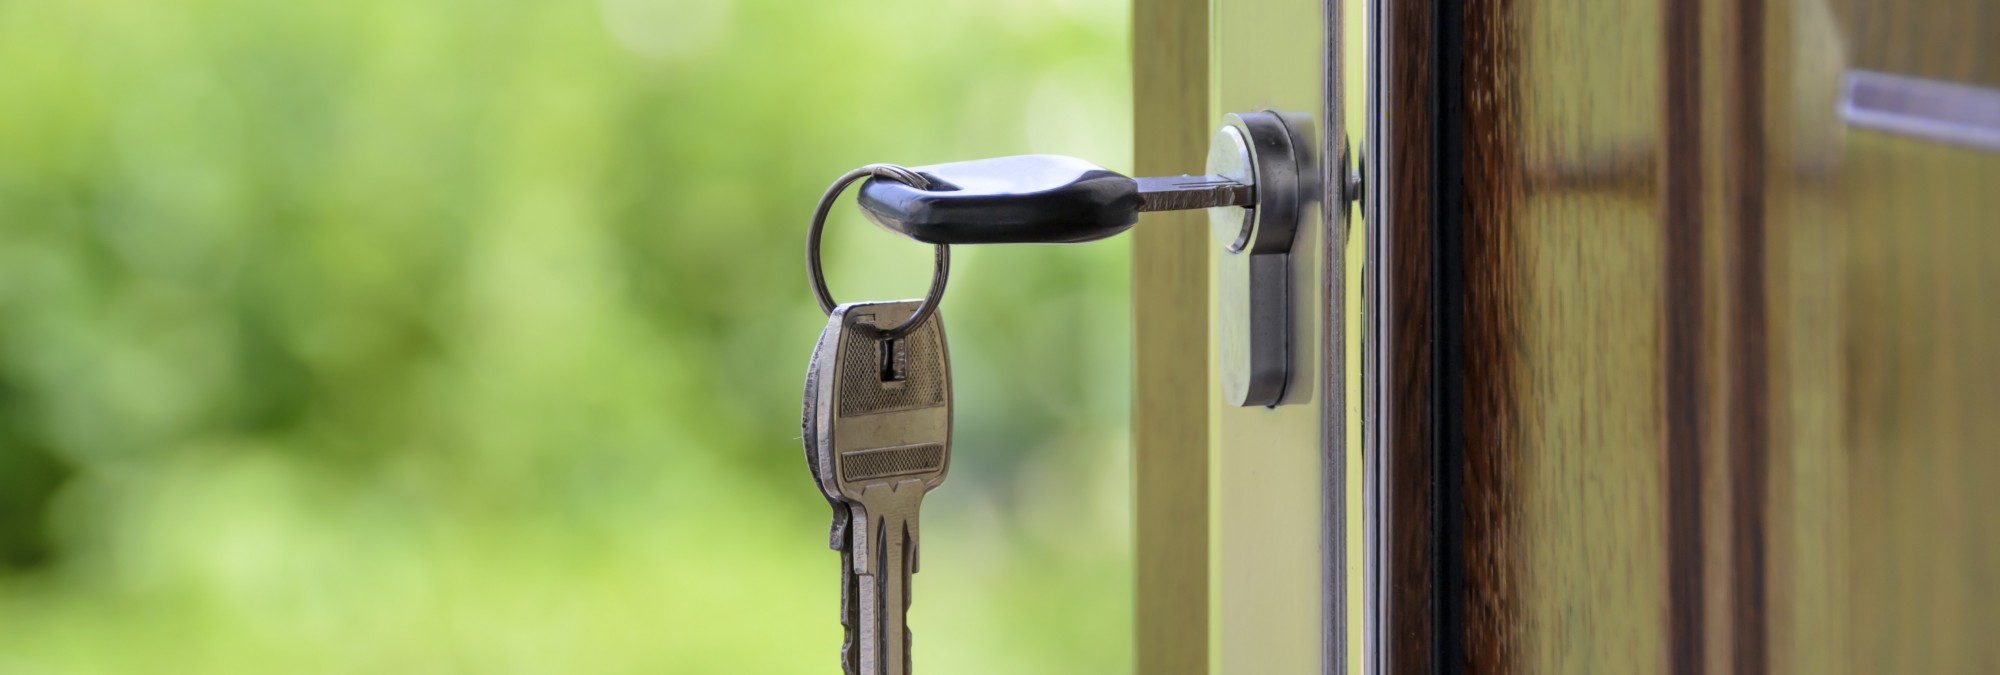 Keys and lock the door on the background of solar garden